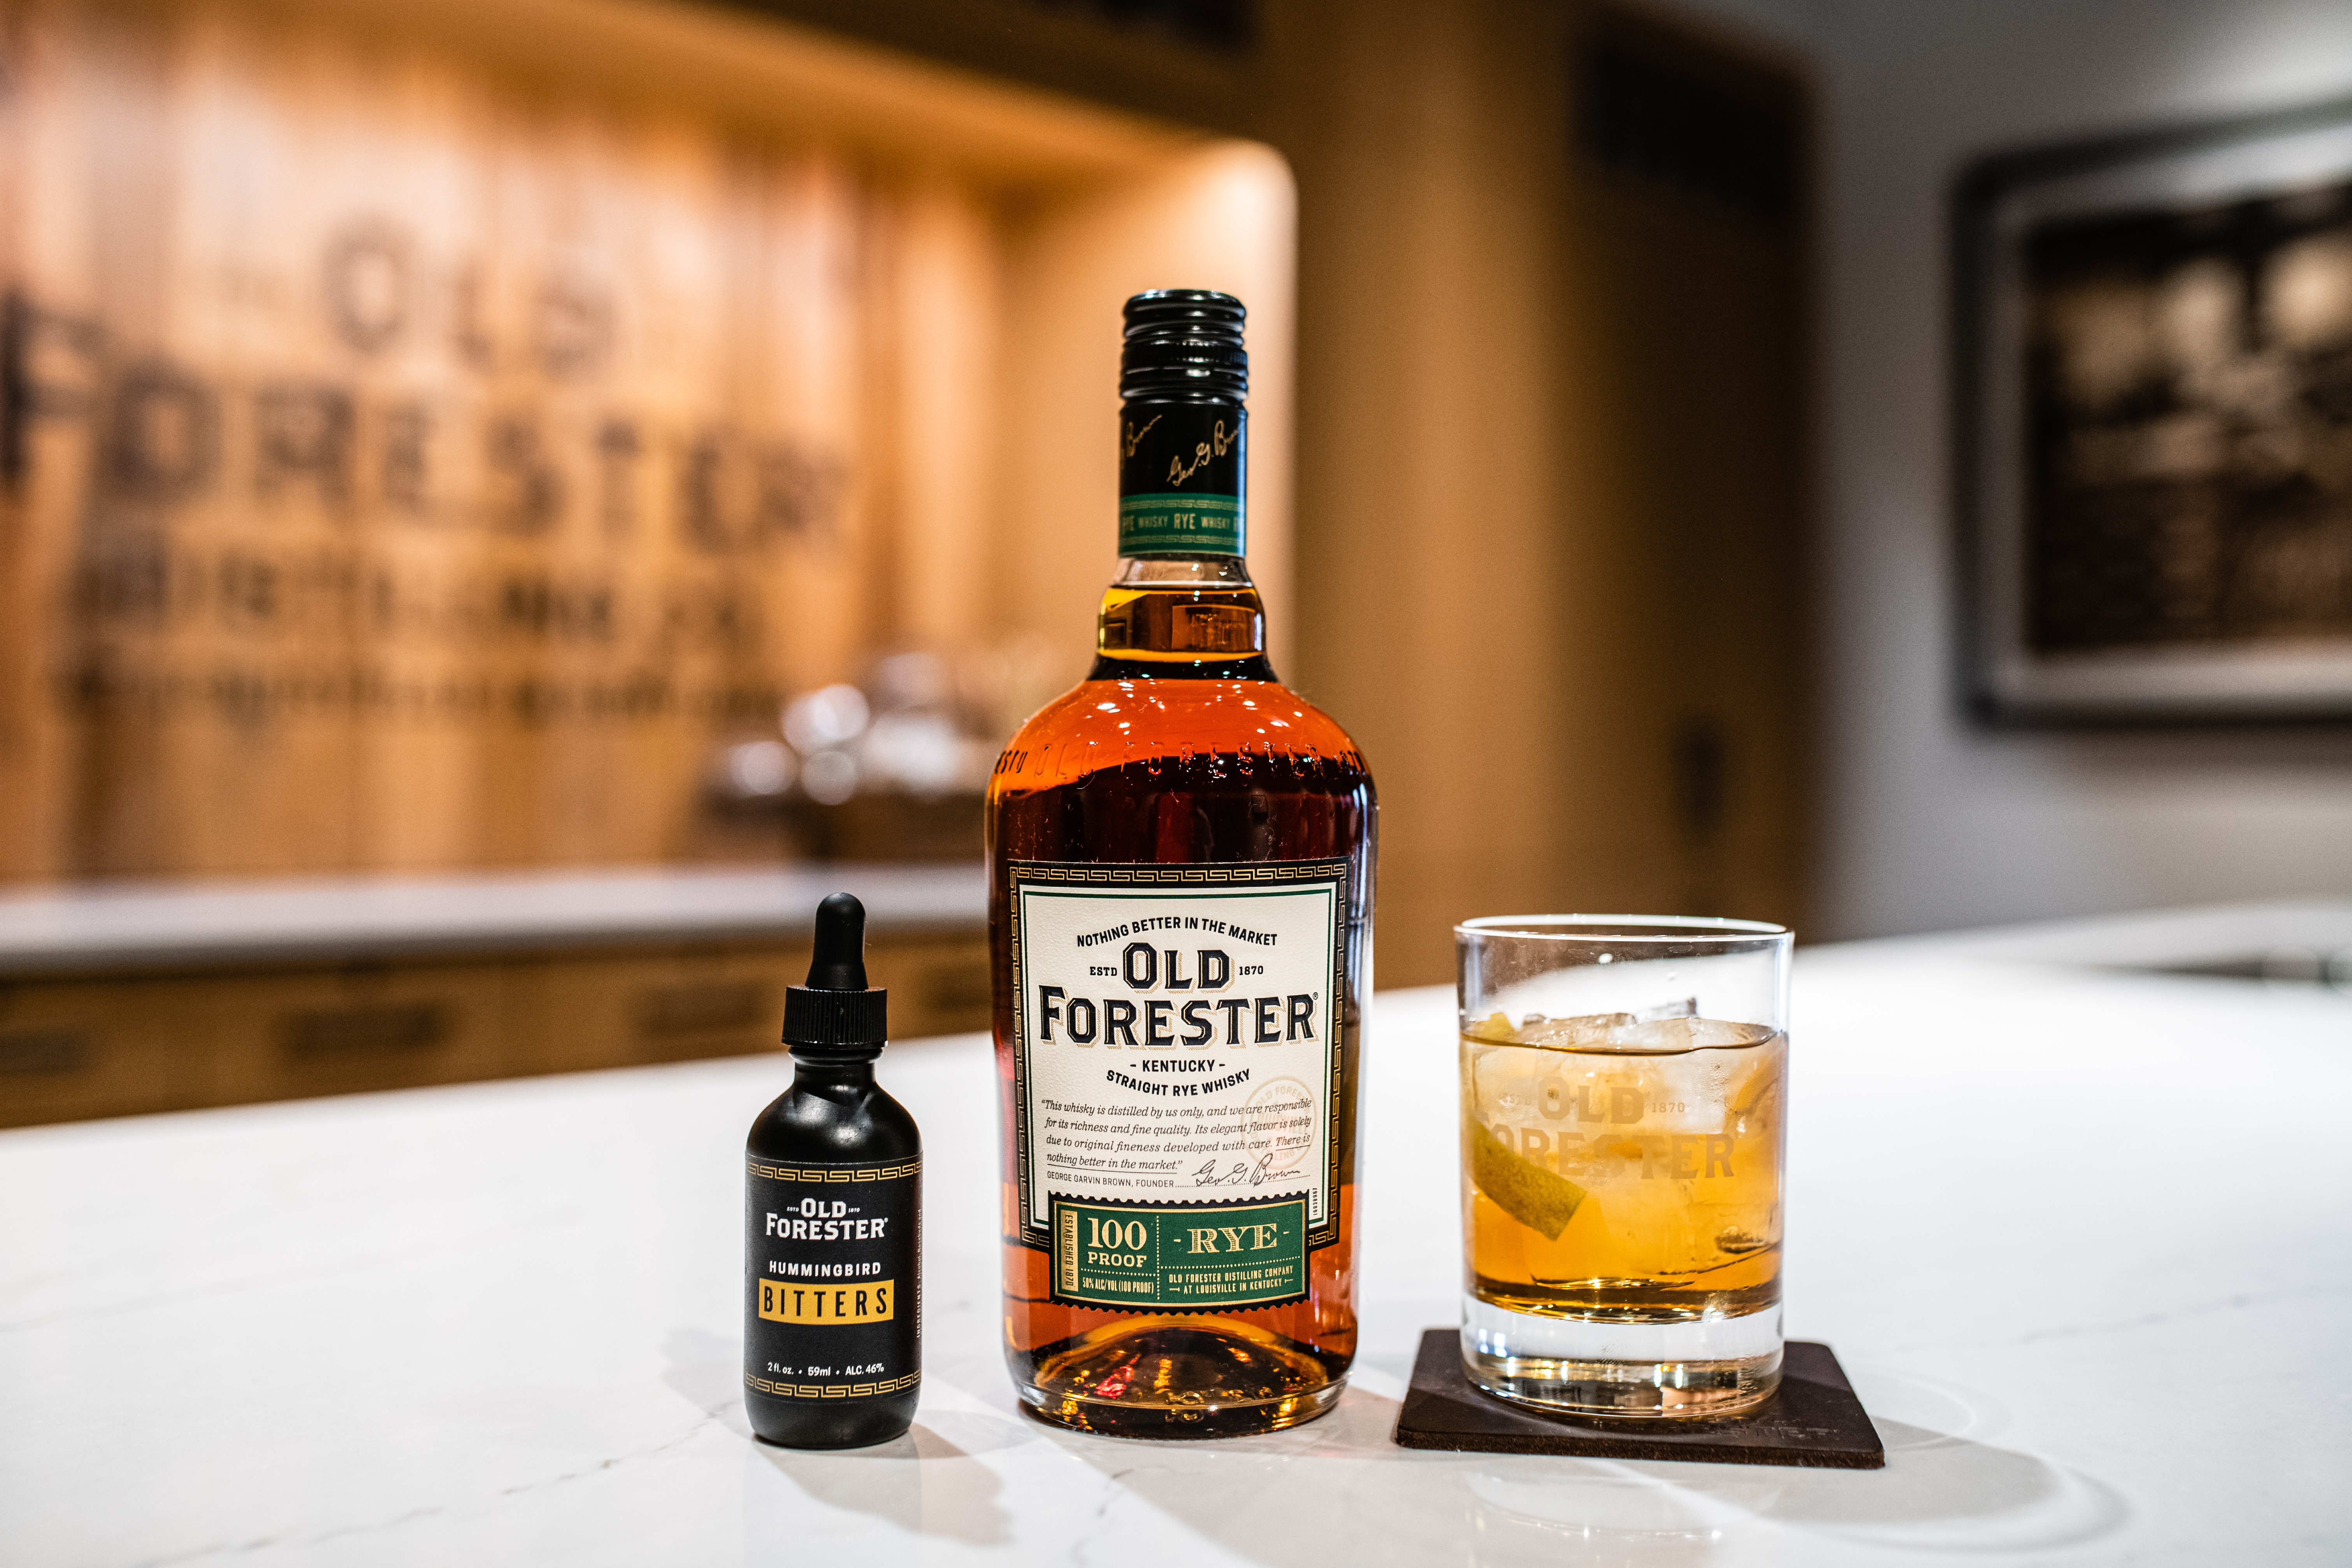 Old Forester Rye Old Fashioned